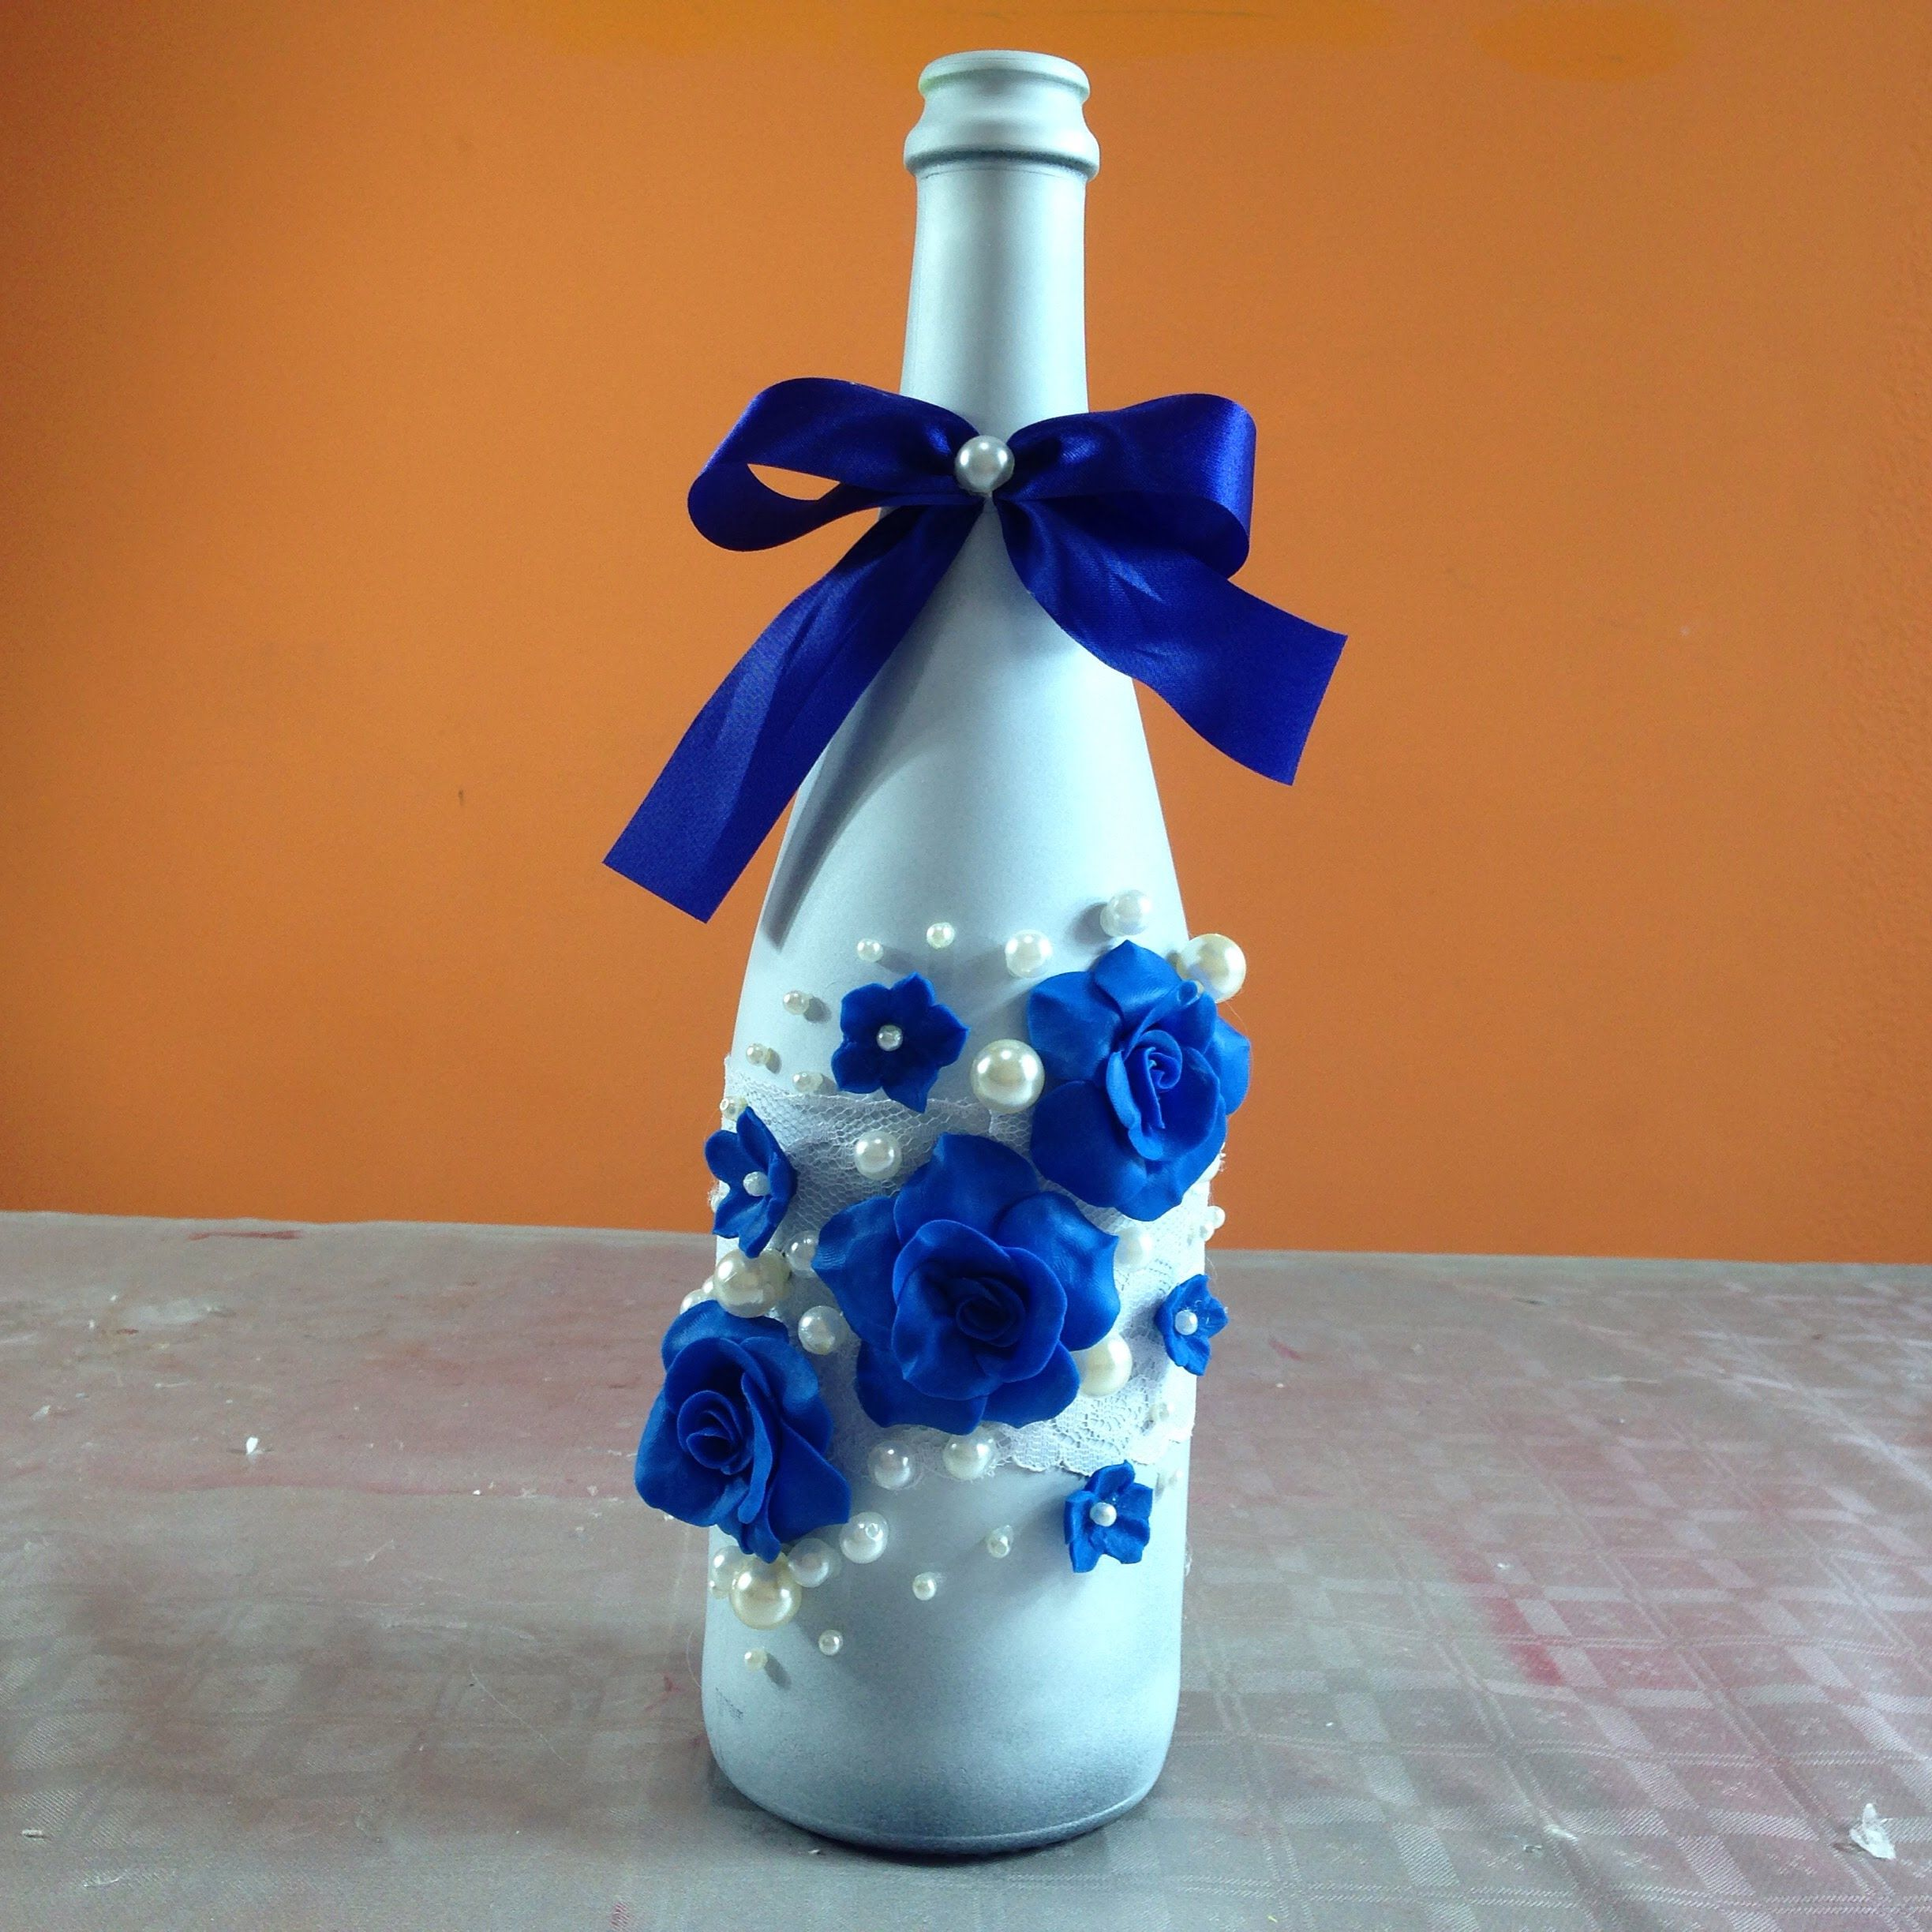 Botellas Decoradas Para 15 Botella Decorada Para Fiesta De Boda Bottle Decorated For